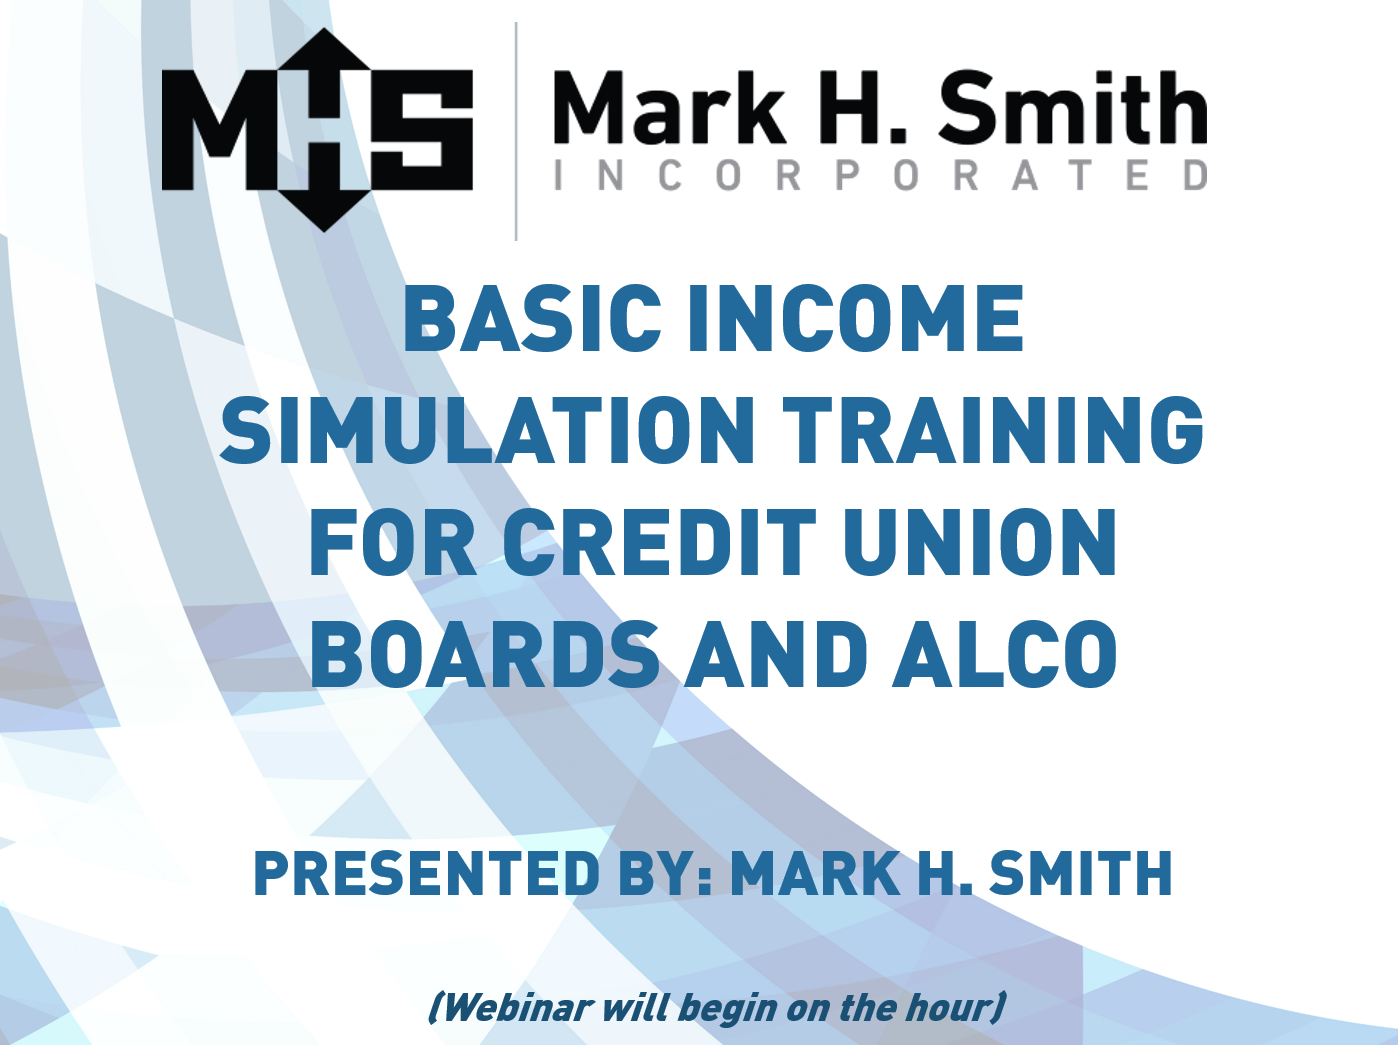 Basic Income Simulation Training for Credit Union Boards and ALCOs